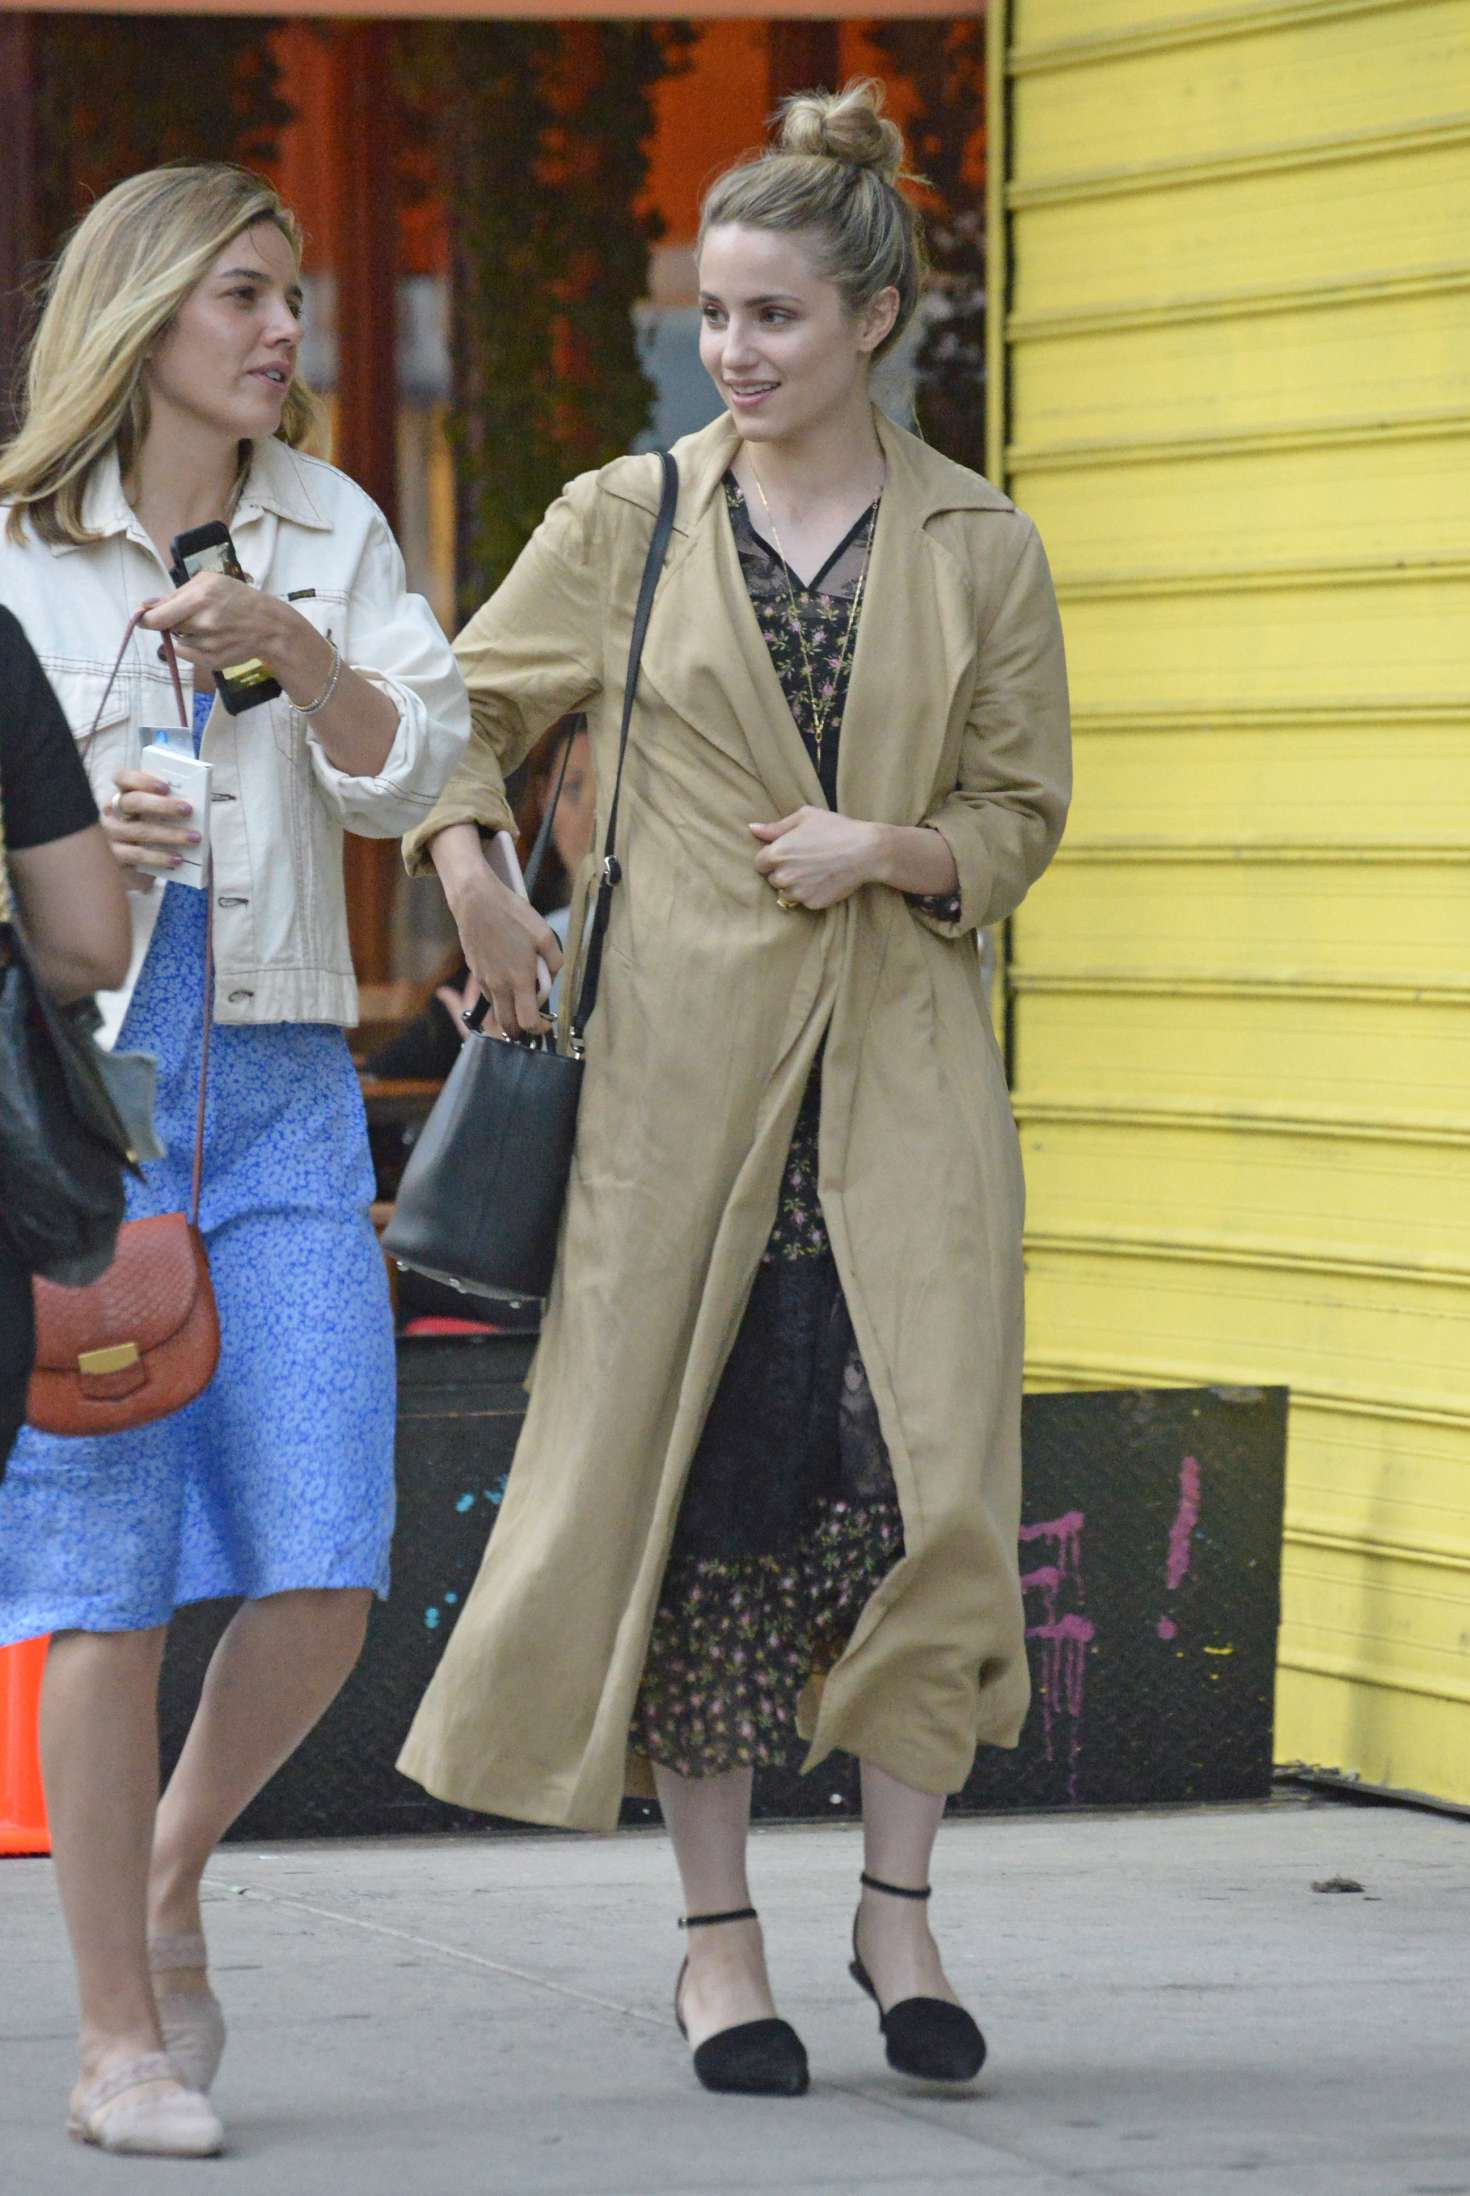 Dianna agron out in new york city - 2019 year